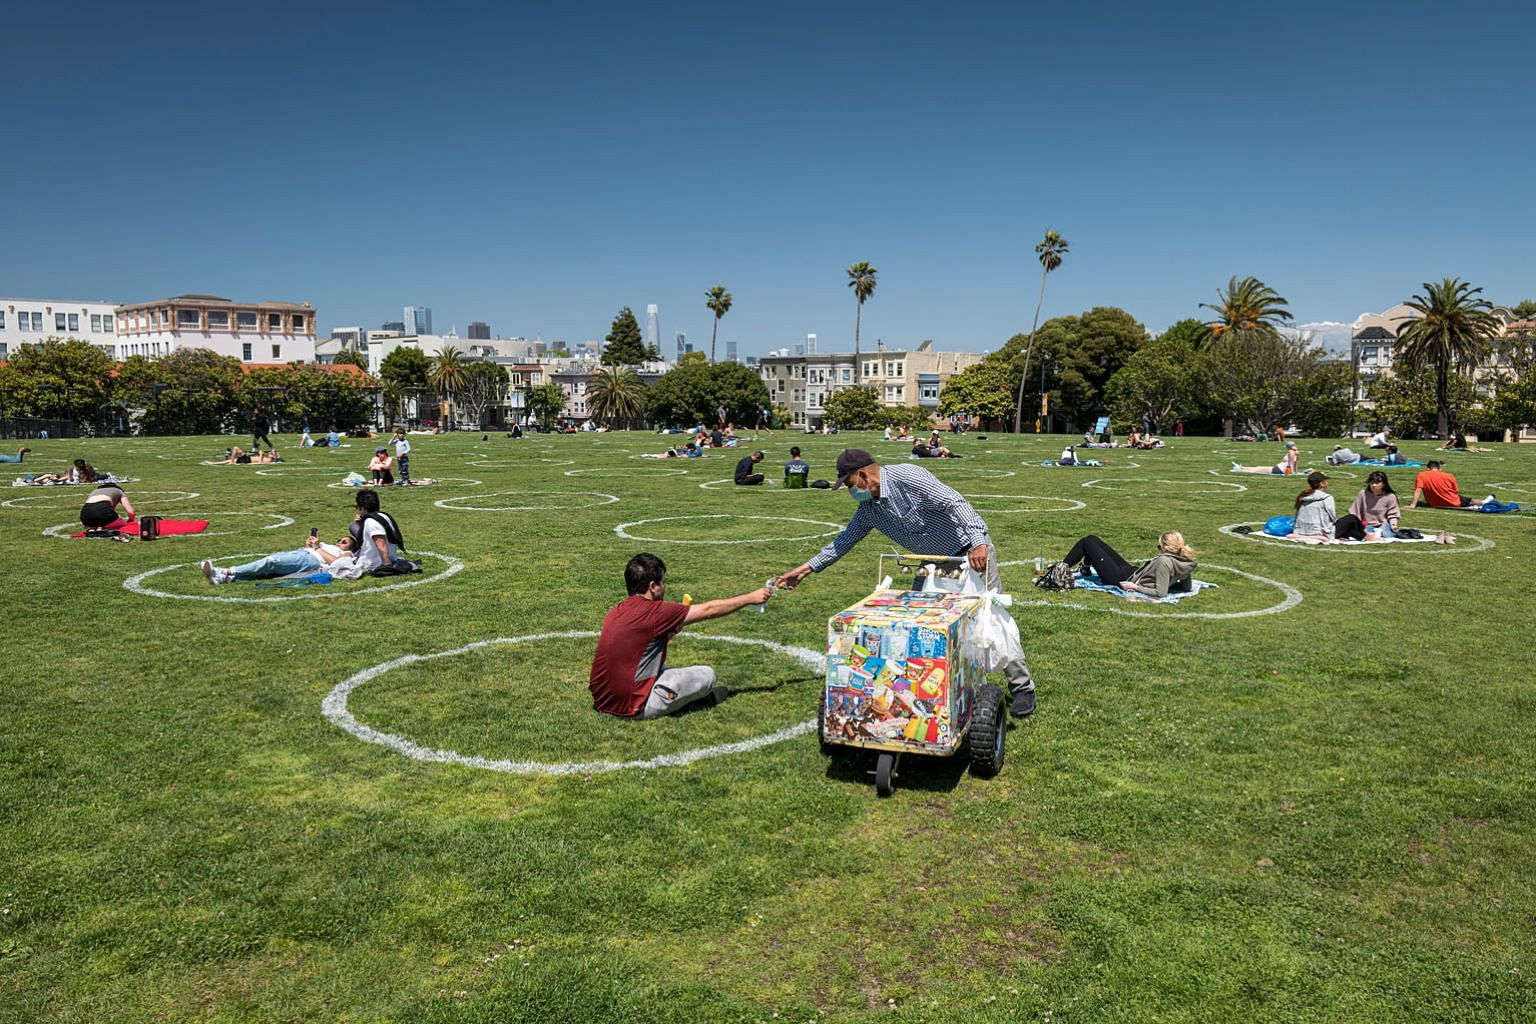 People relaxing within circles marked out on the grass to promote social distancing to curb the spread of the coronavirus in San Francisco, California, on Thursday.